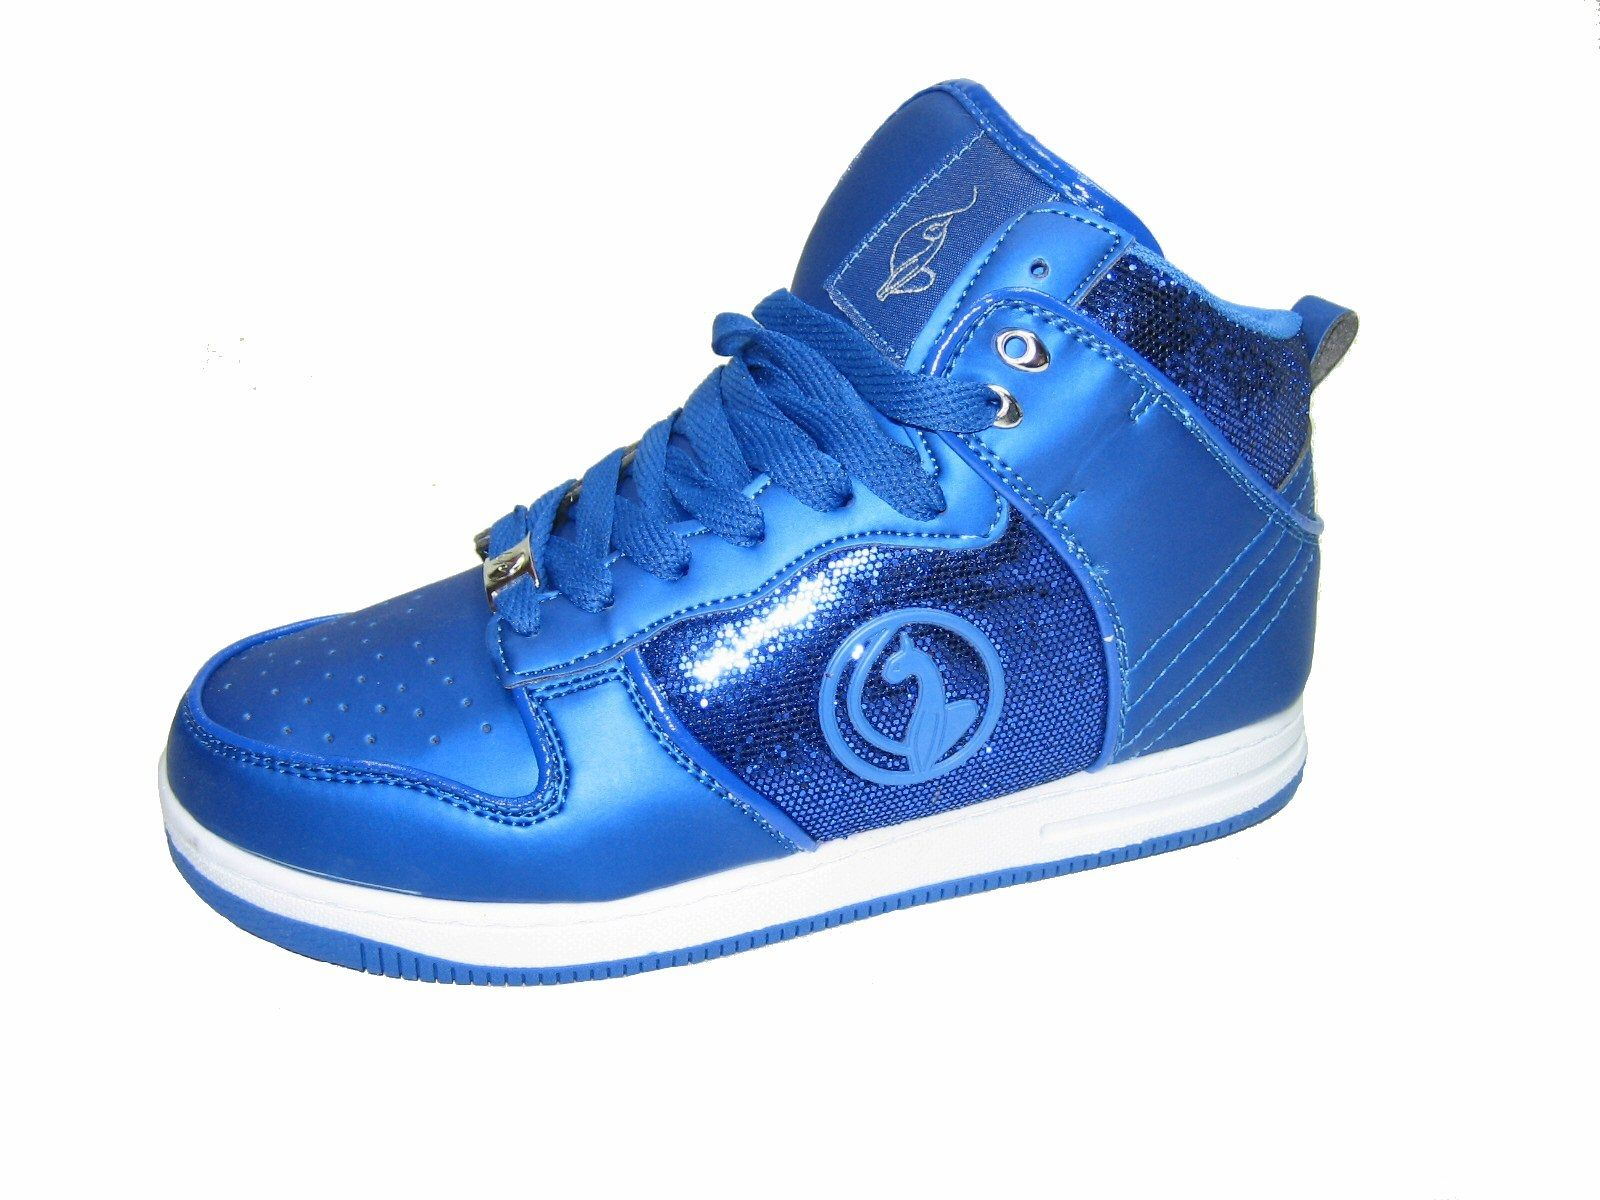 Baby Phat Gina women's athletic comfort flats lace up high top sneakers $36.99 Puddycatshoes.com